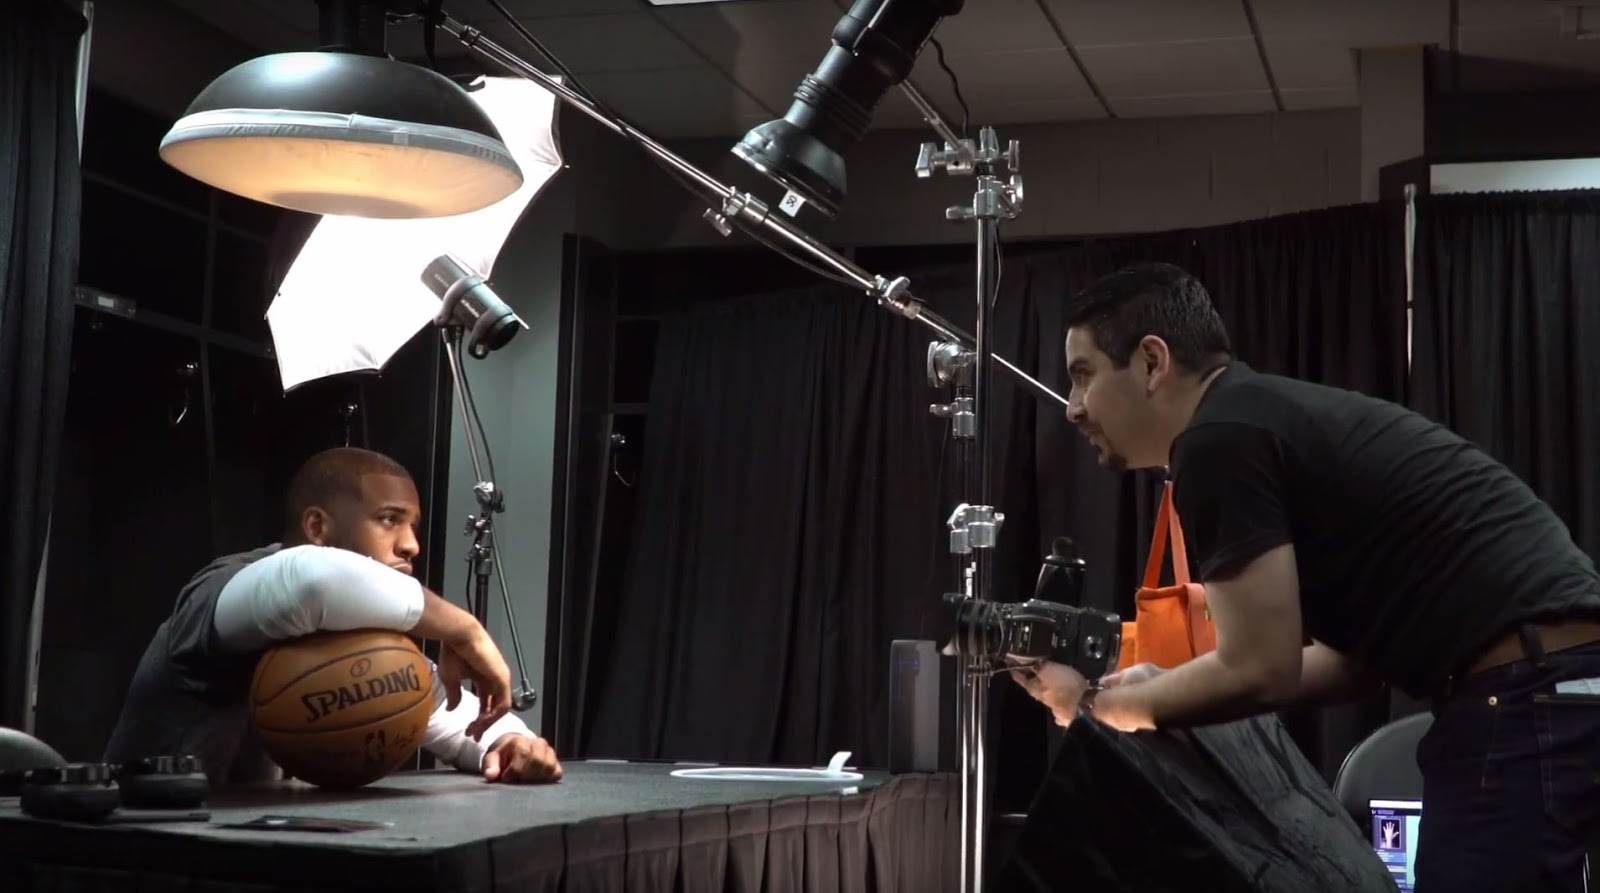 NYTIMES BTS: Portrait of Chris Paul for The New York Times by Alexis Cuarezma